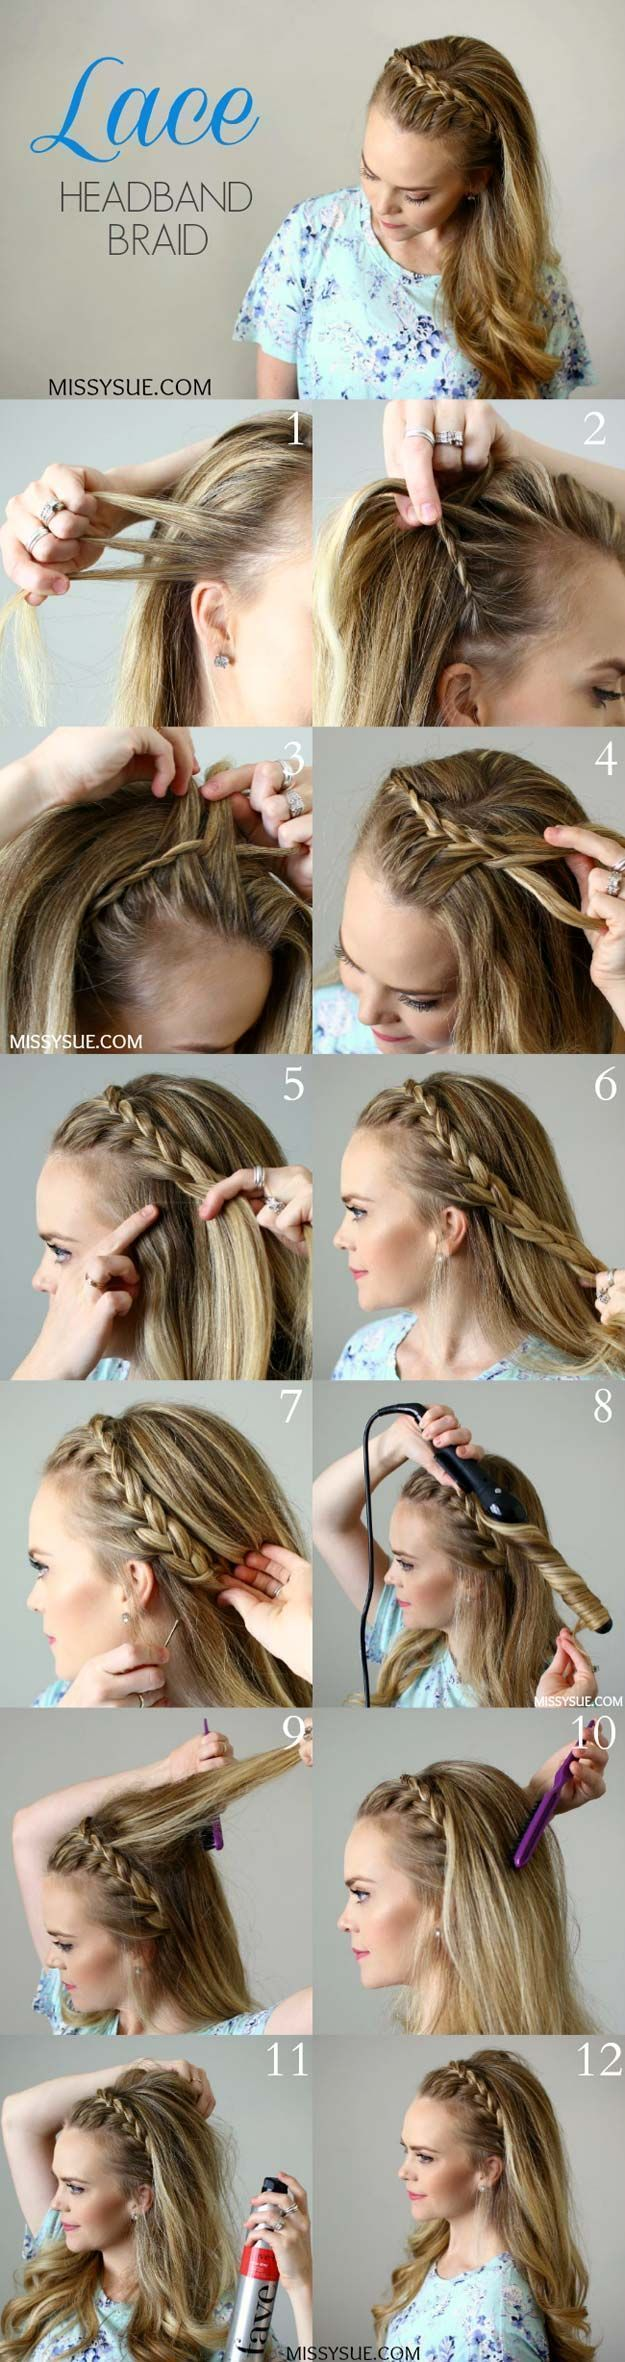 Best hair braiding tutorials lace headband braid easy step by